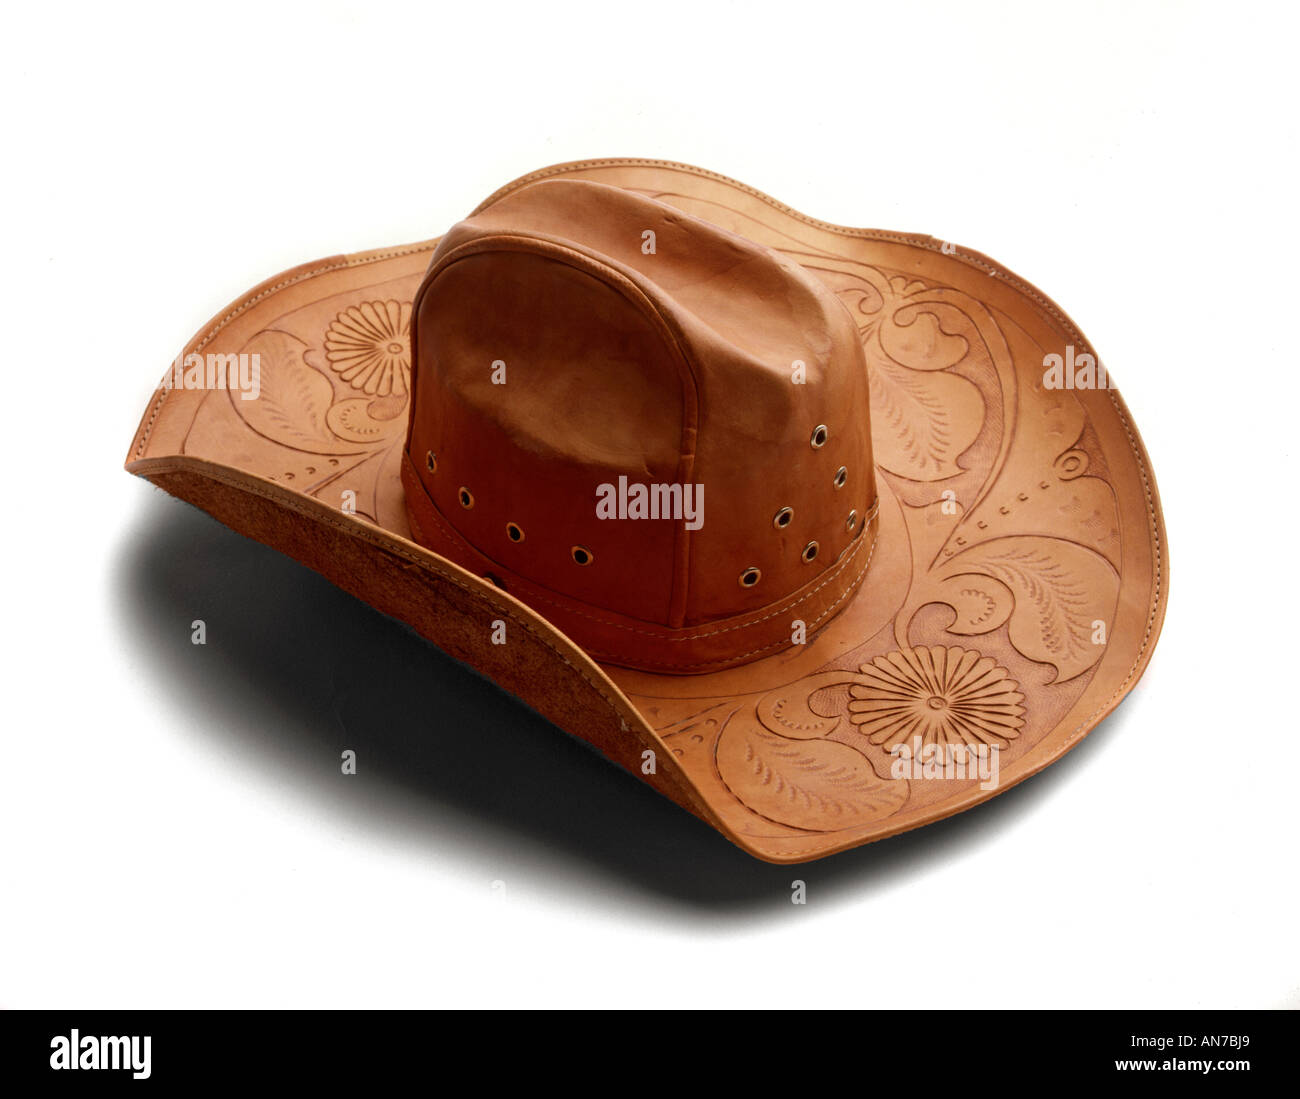 HAND TOOLED LEATHER COWBOY HAT from SOUTH AMERICA - Stock Image